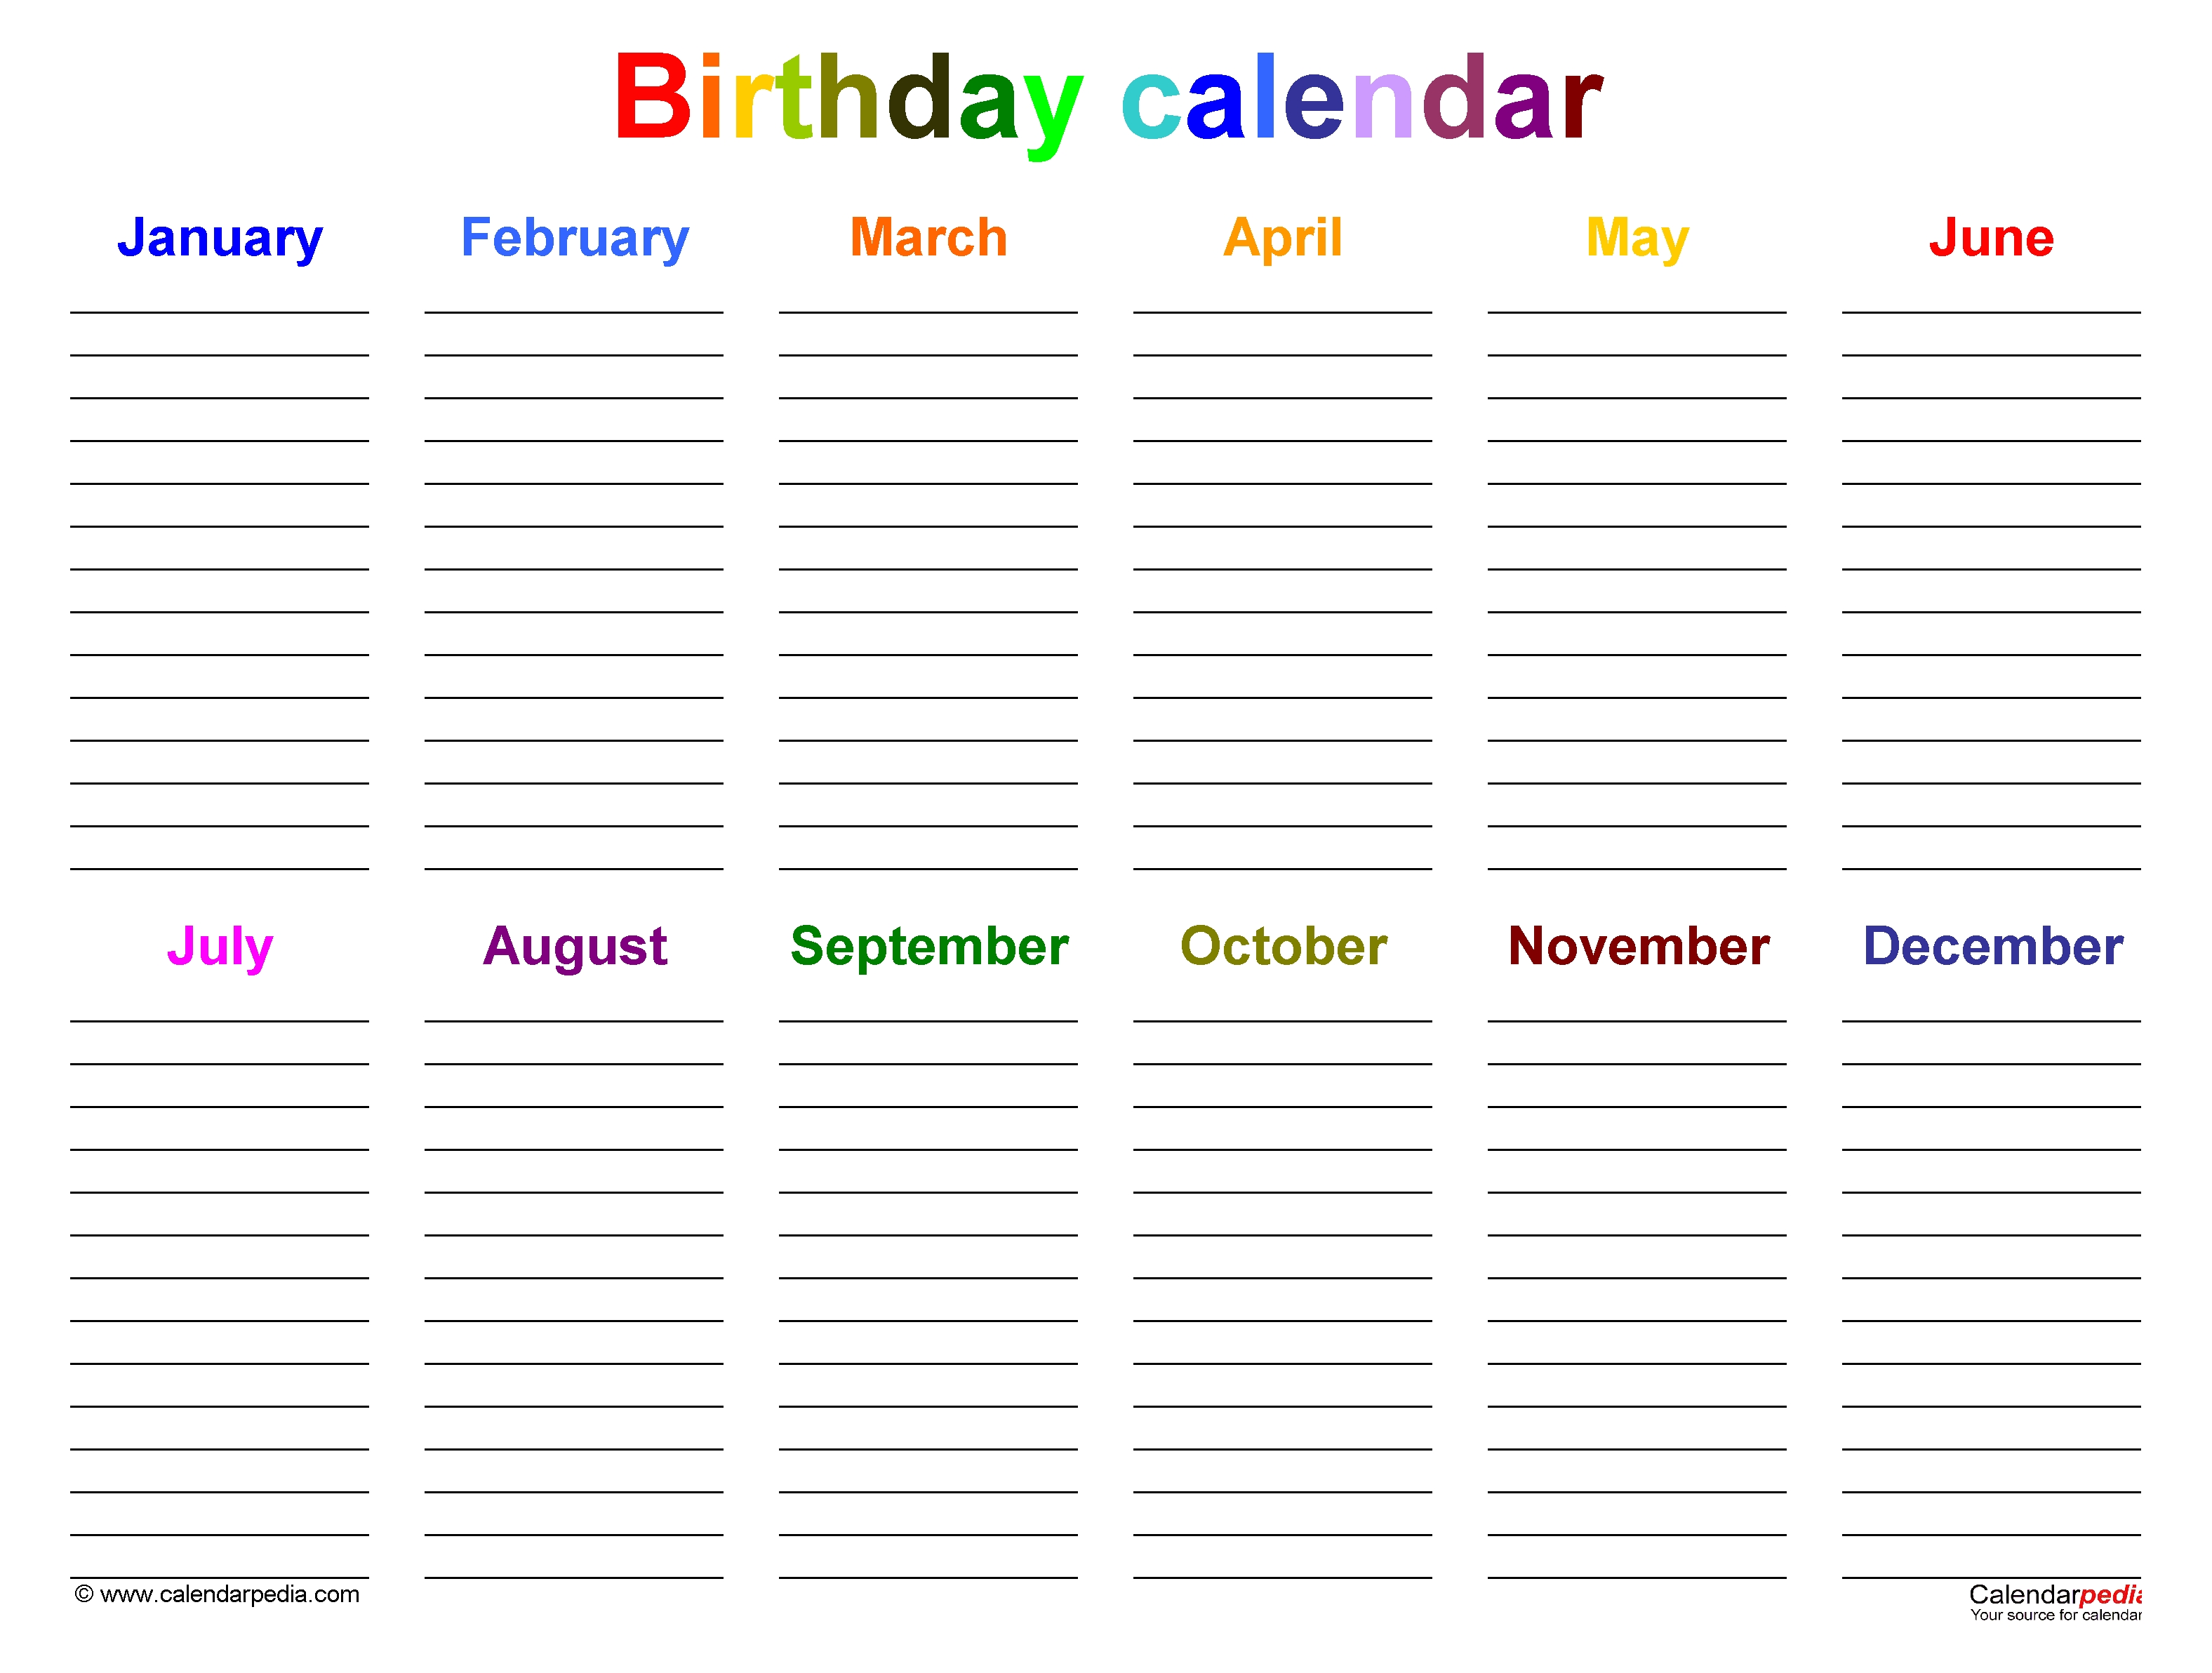 Birthday Calendars - Free Printable Microsoft Excel Templates